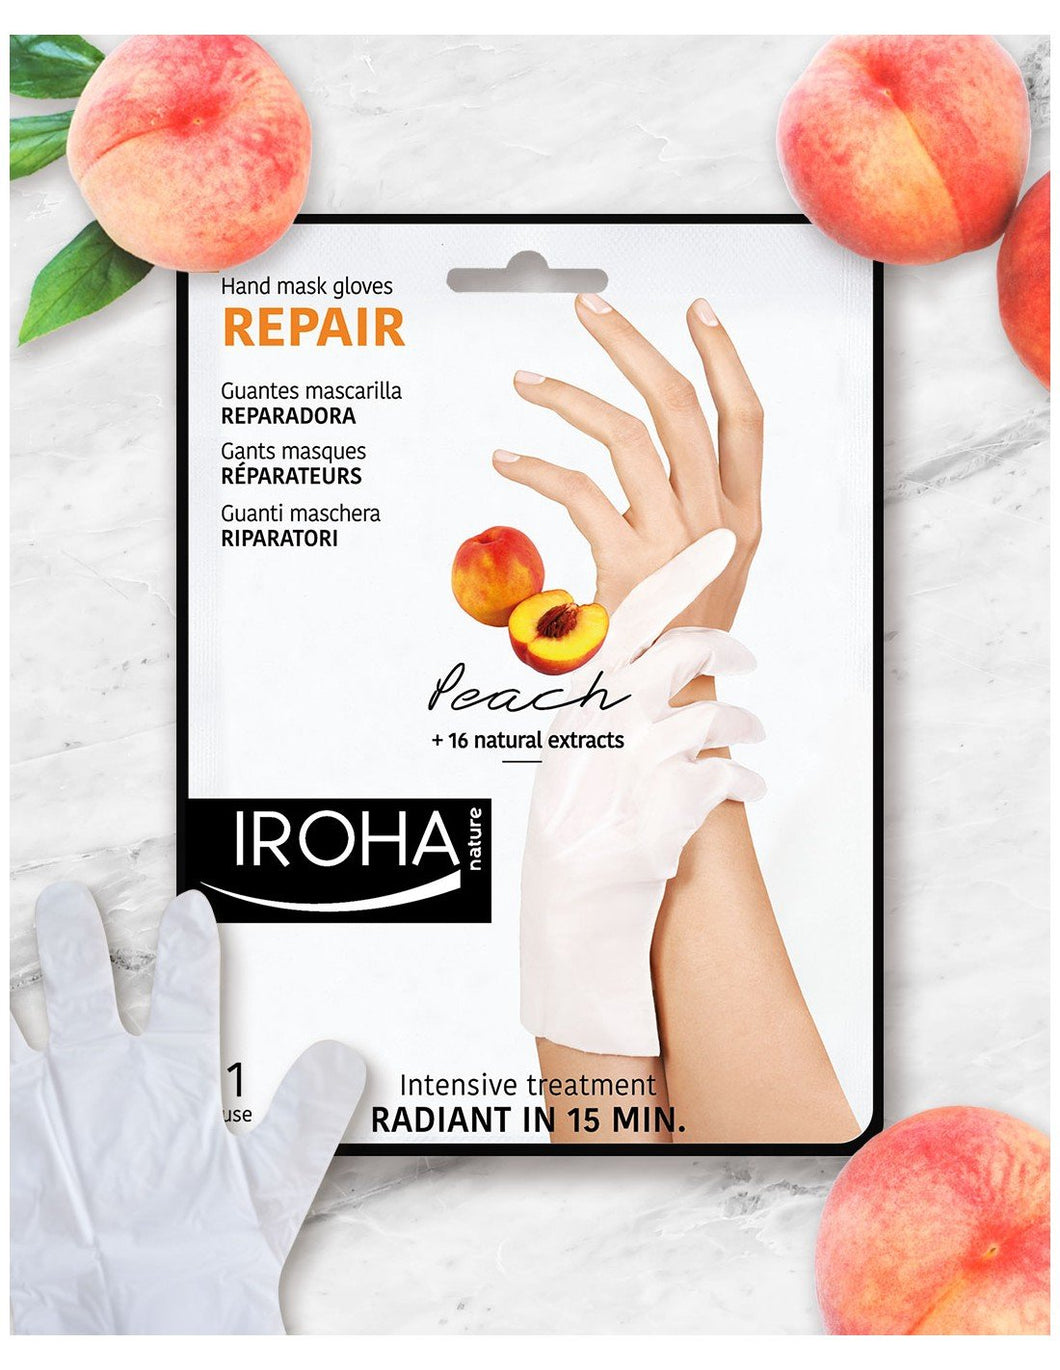 repairing-gloves-mask-for-hands-peach.jp